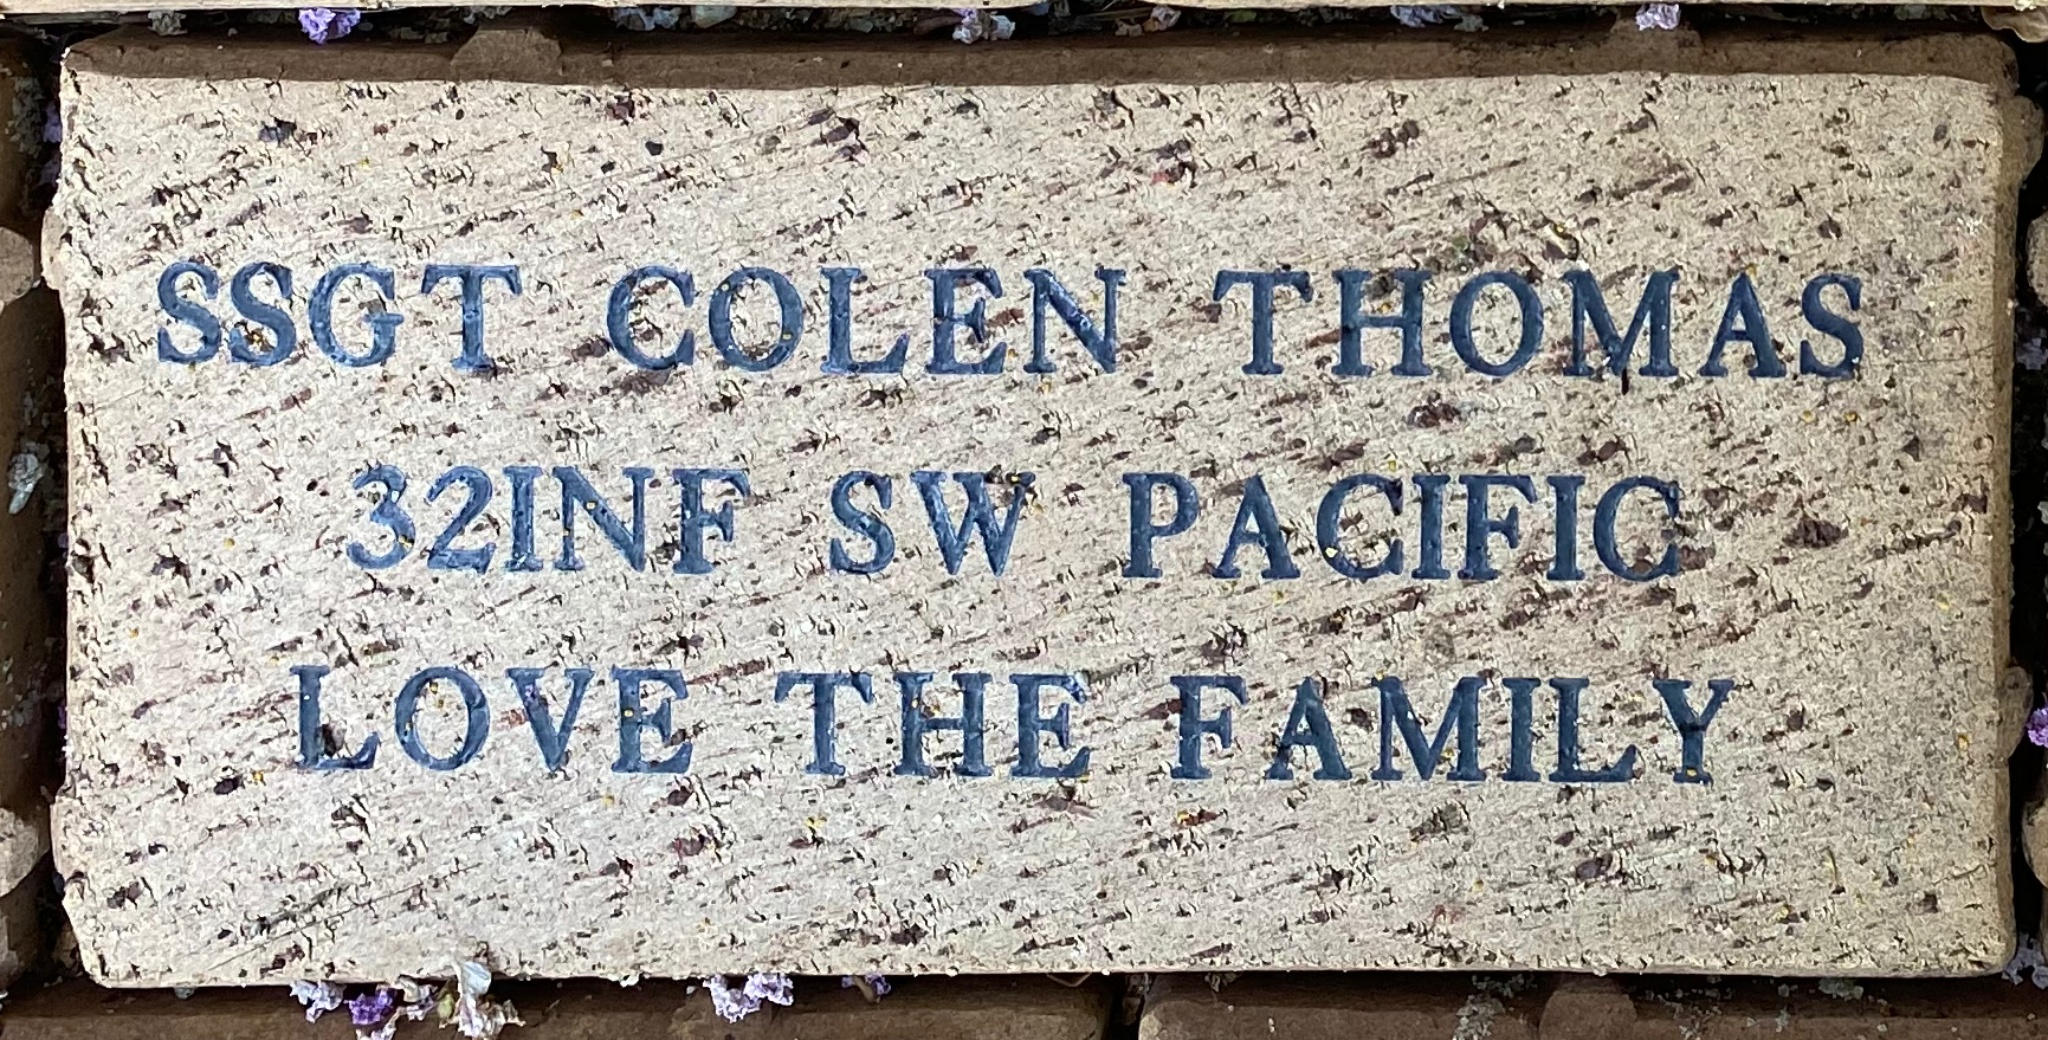 SSGT COLEN THOMAS 32INF SW PACIFIC LOVE THE FAMILY